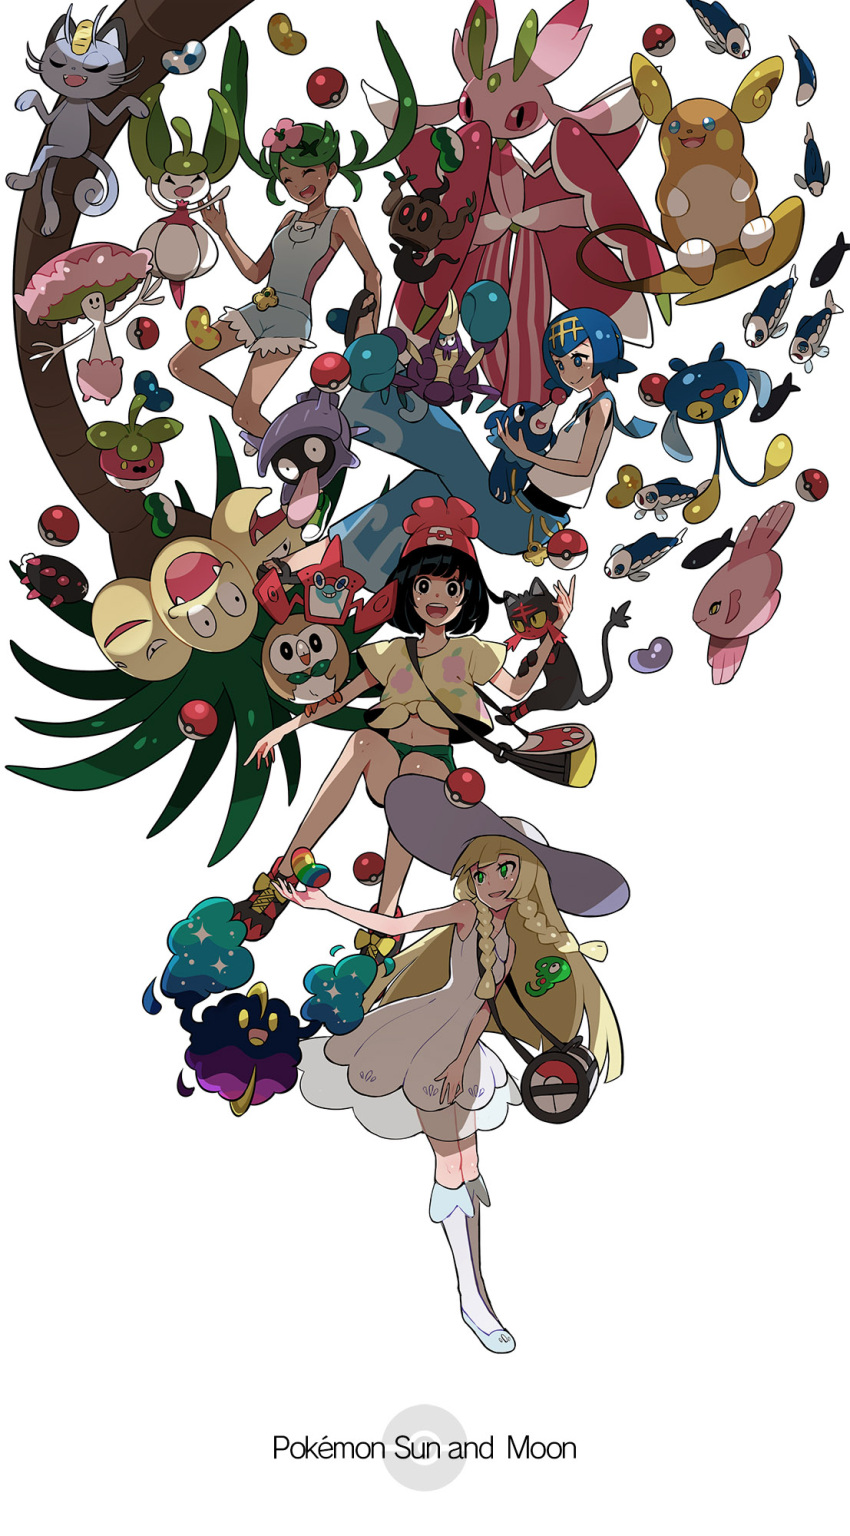 4girls alolan_exeggutor alolan_meowth alolan_raichu alomomola bounsweet chinchou cosmog crabrawler female_protagonist_(pokemon_sm) full_body highres lillie_(pokemon) litten lurantis mao_(pokemon) multiple_girls phantump poke_ball poke_bean pokemon_(creature) pokemon_(game) pokemon_sm popplio pyukumuku ram_(ramlabo) rotom rowlet shellder shiinotic simple_background steenee suiren_(pokemon) trial_captain white_background wishiwashi zygarde_cell